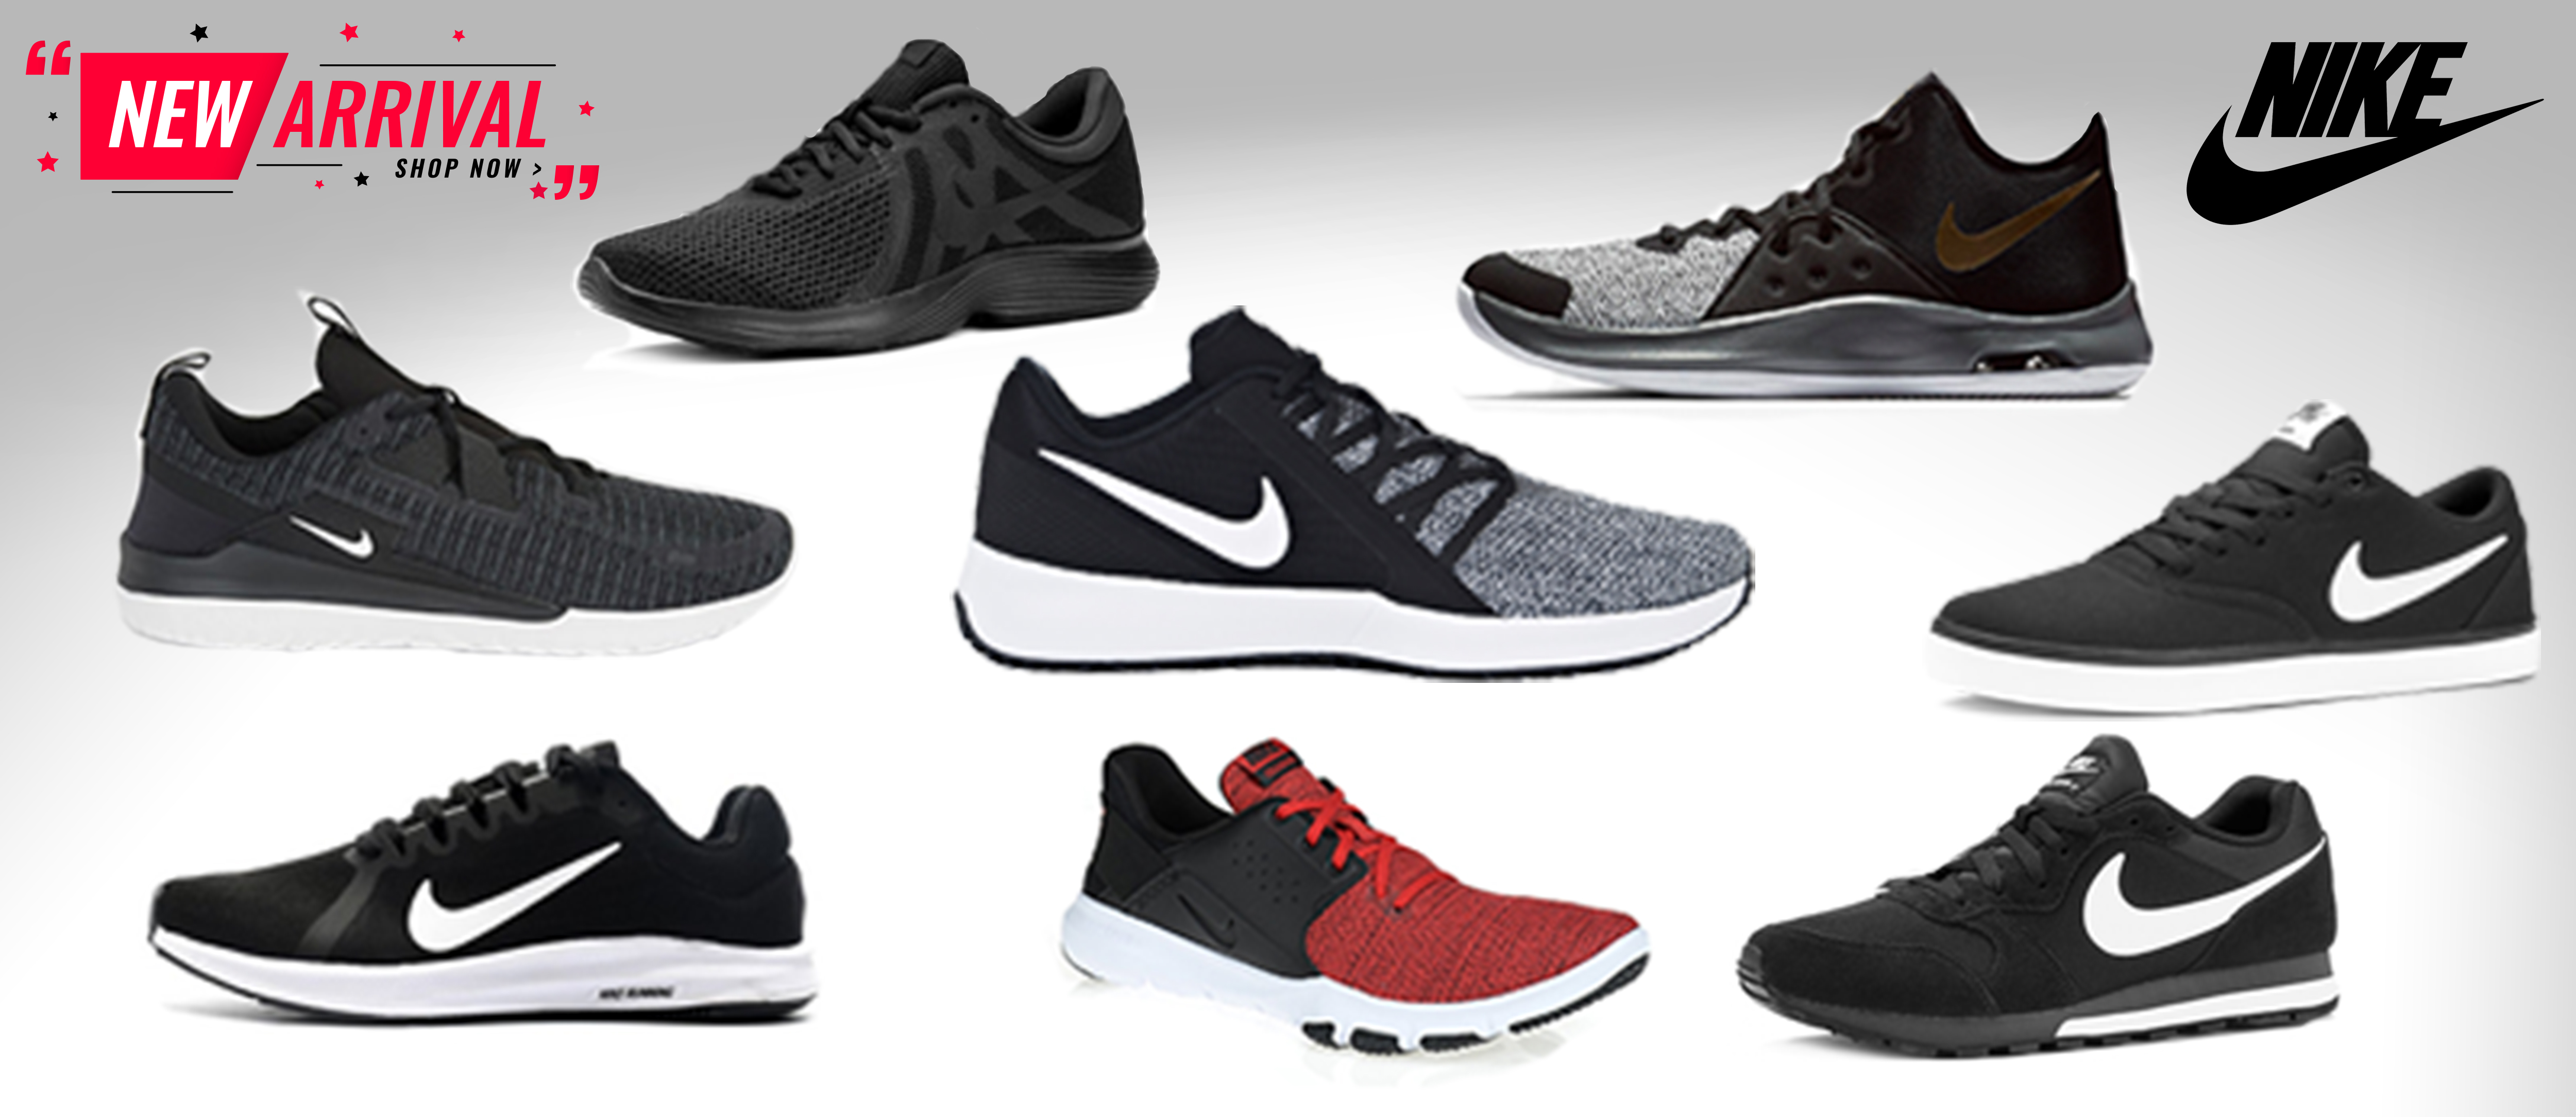 New arrivals Nike shoe